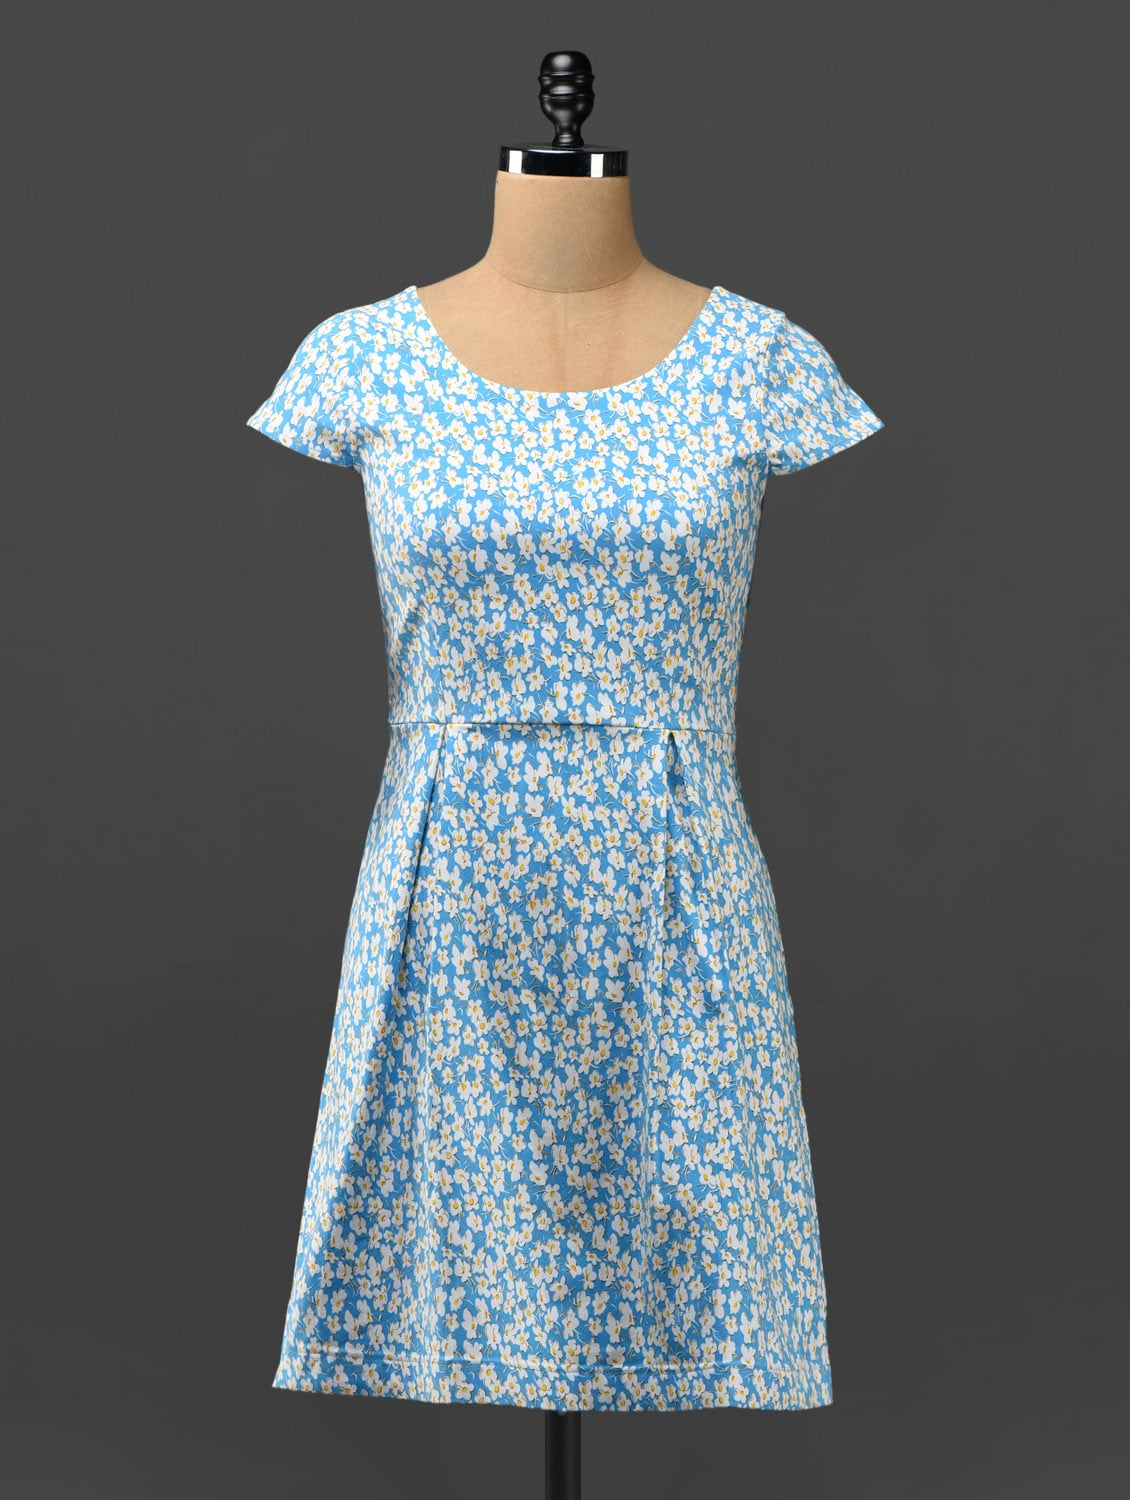 Blue Floral Print Dress With Cut-out Back - Phenomena